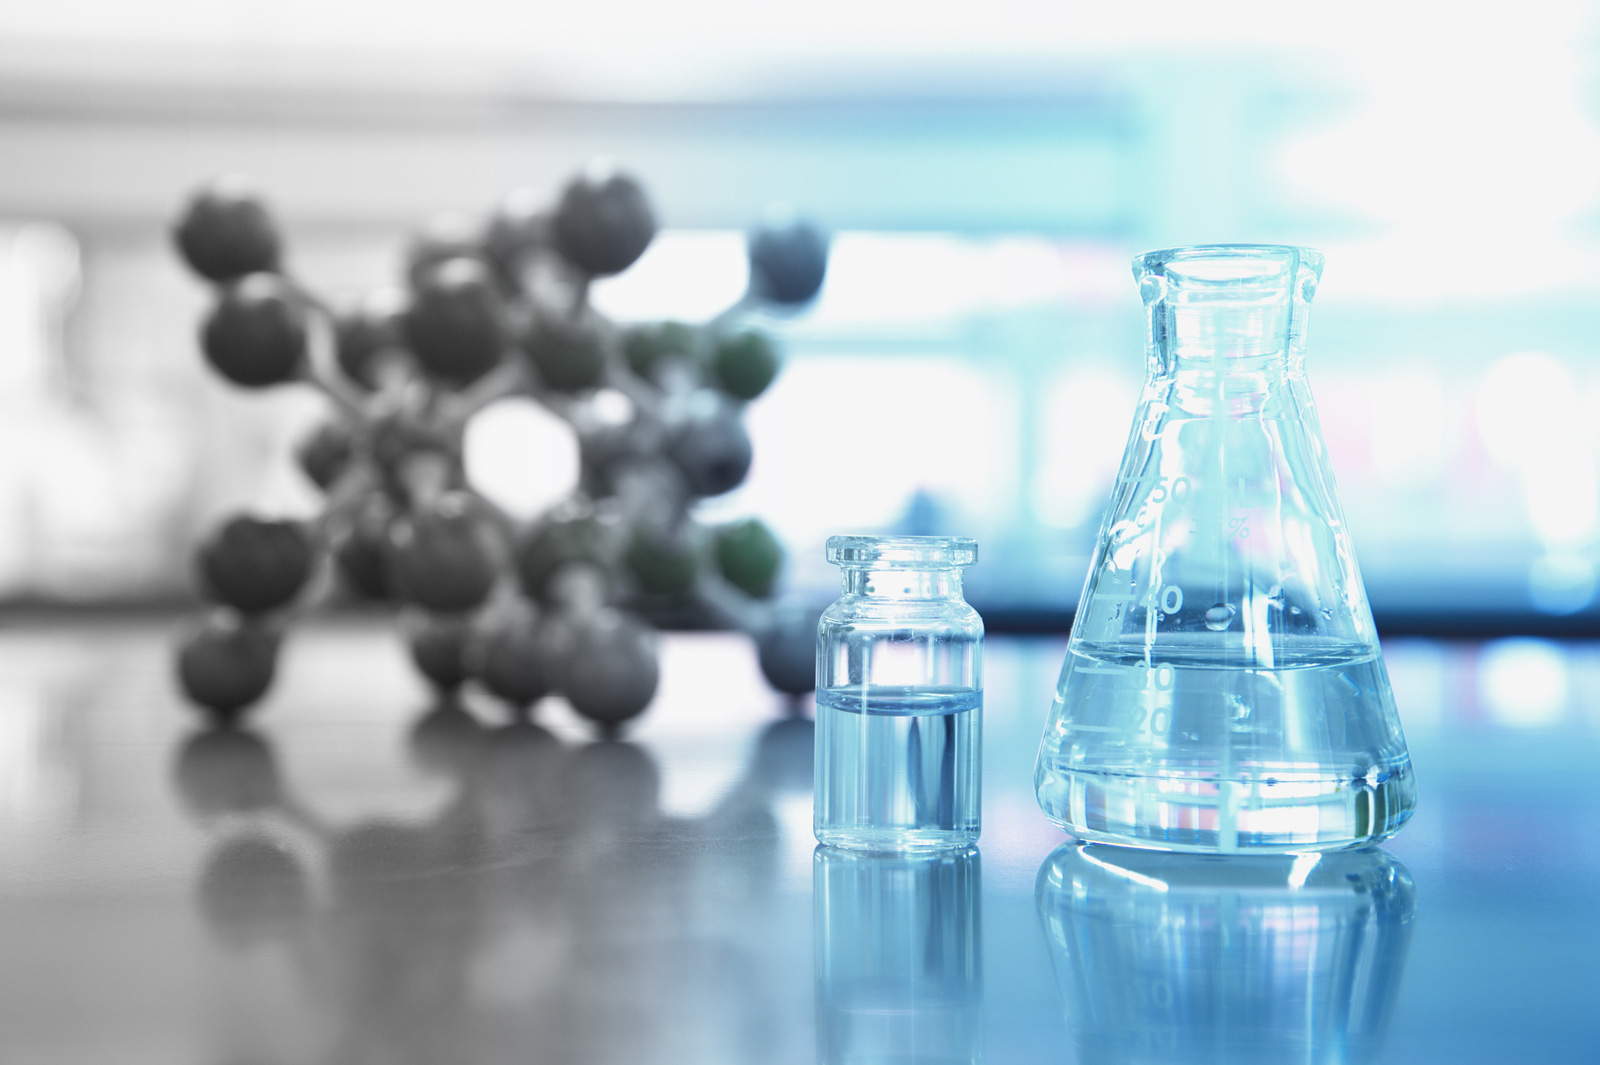 Ethanolamines  Market Insights, Trends & Growth Outlook